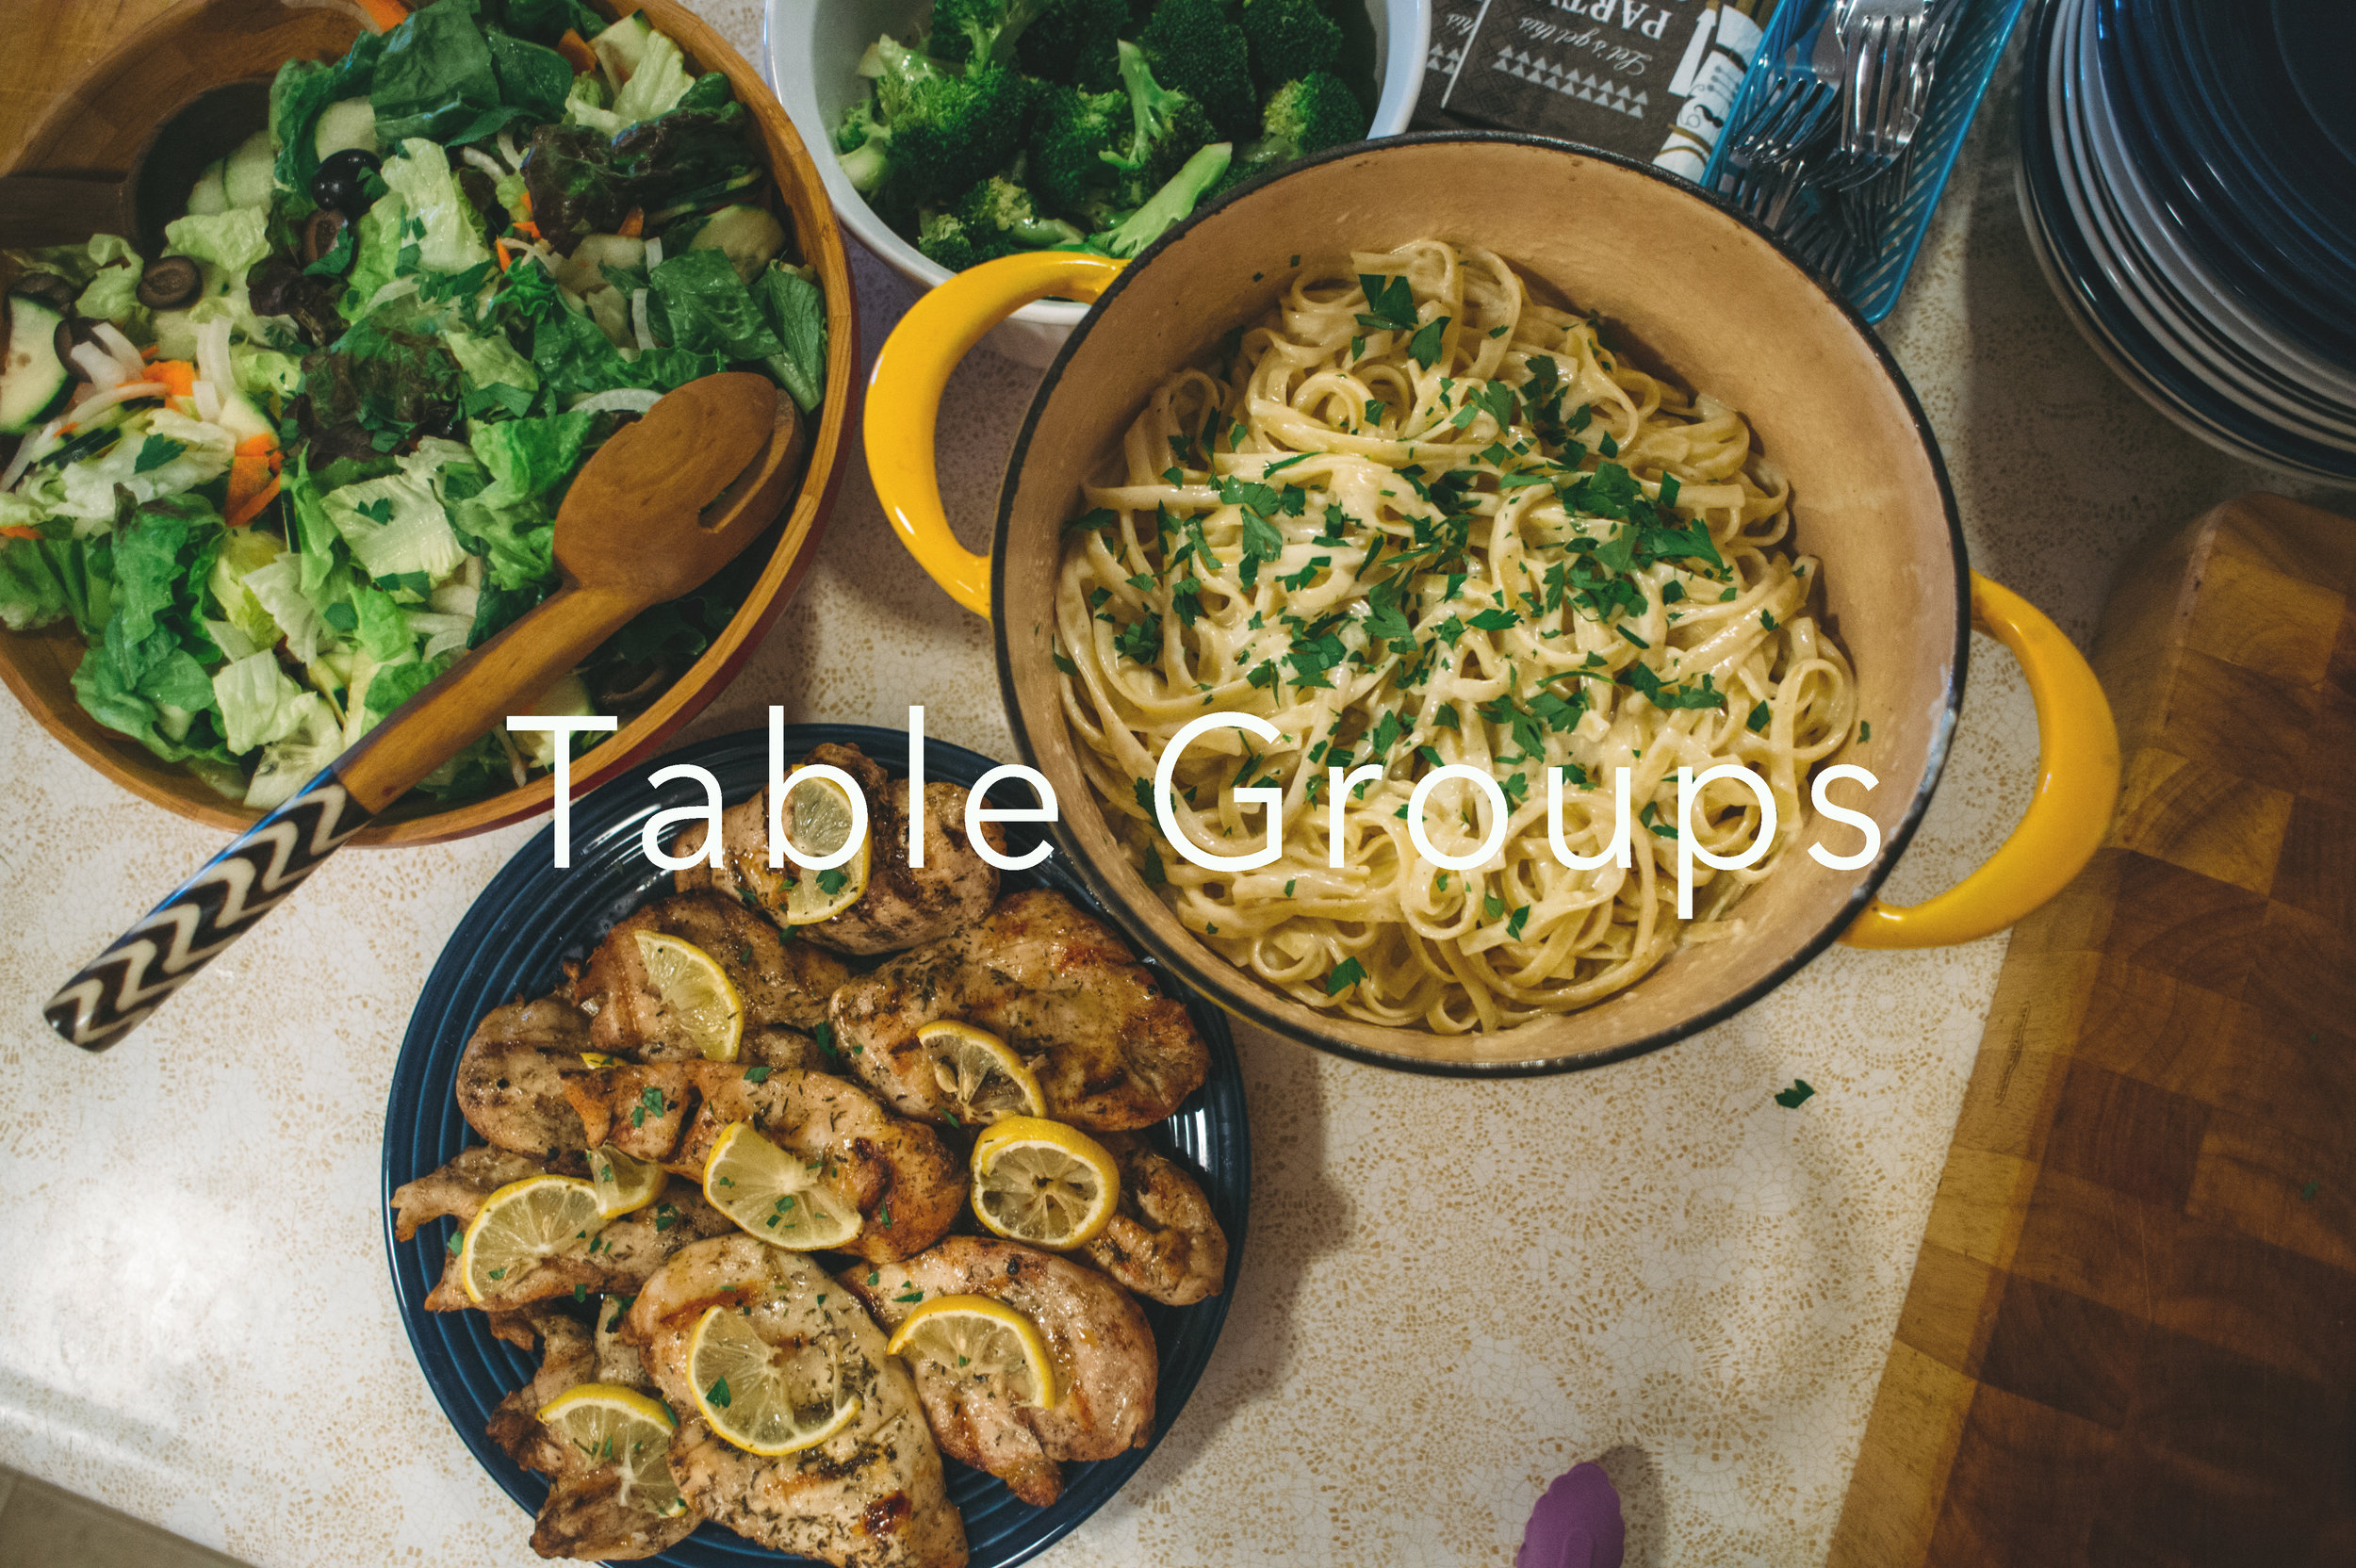 "Current Table Groups: - Fall 2019 Small Groups:TUESDAYS // 6-8pm - Women's Group - Led by Erin Lackey and Miranda Johnson - 360 Grand Ave - Childcare provided - applying Sunday's message to our lives. PotlWEDNESDAYS - 6-7:30 - Book of Amos - Jaymes Lackey leads an in-depth bible study on the Old Testament Book of Amos. Open to anyone - no childcareTHURSDAYS - 6:30-8pm - Book group on ""Kill the Spider"" - this group is led by Matt and Julianne Manera, Hosted by Ryan and Misty Rayome. It is open to couples. No Childcare.Click the button below to Learn More!"